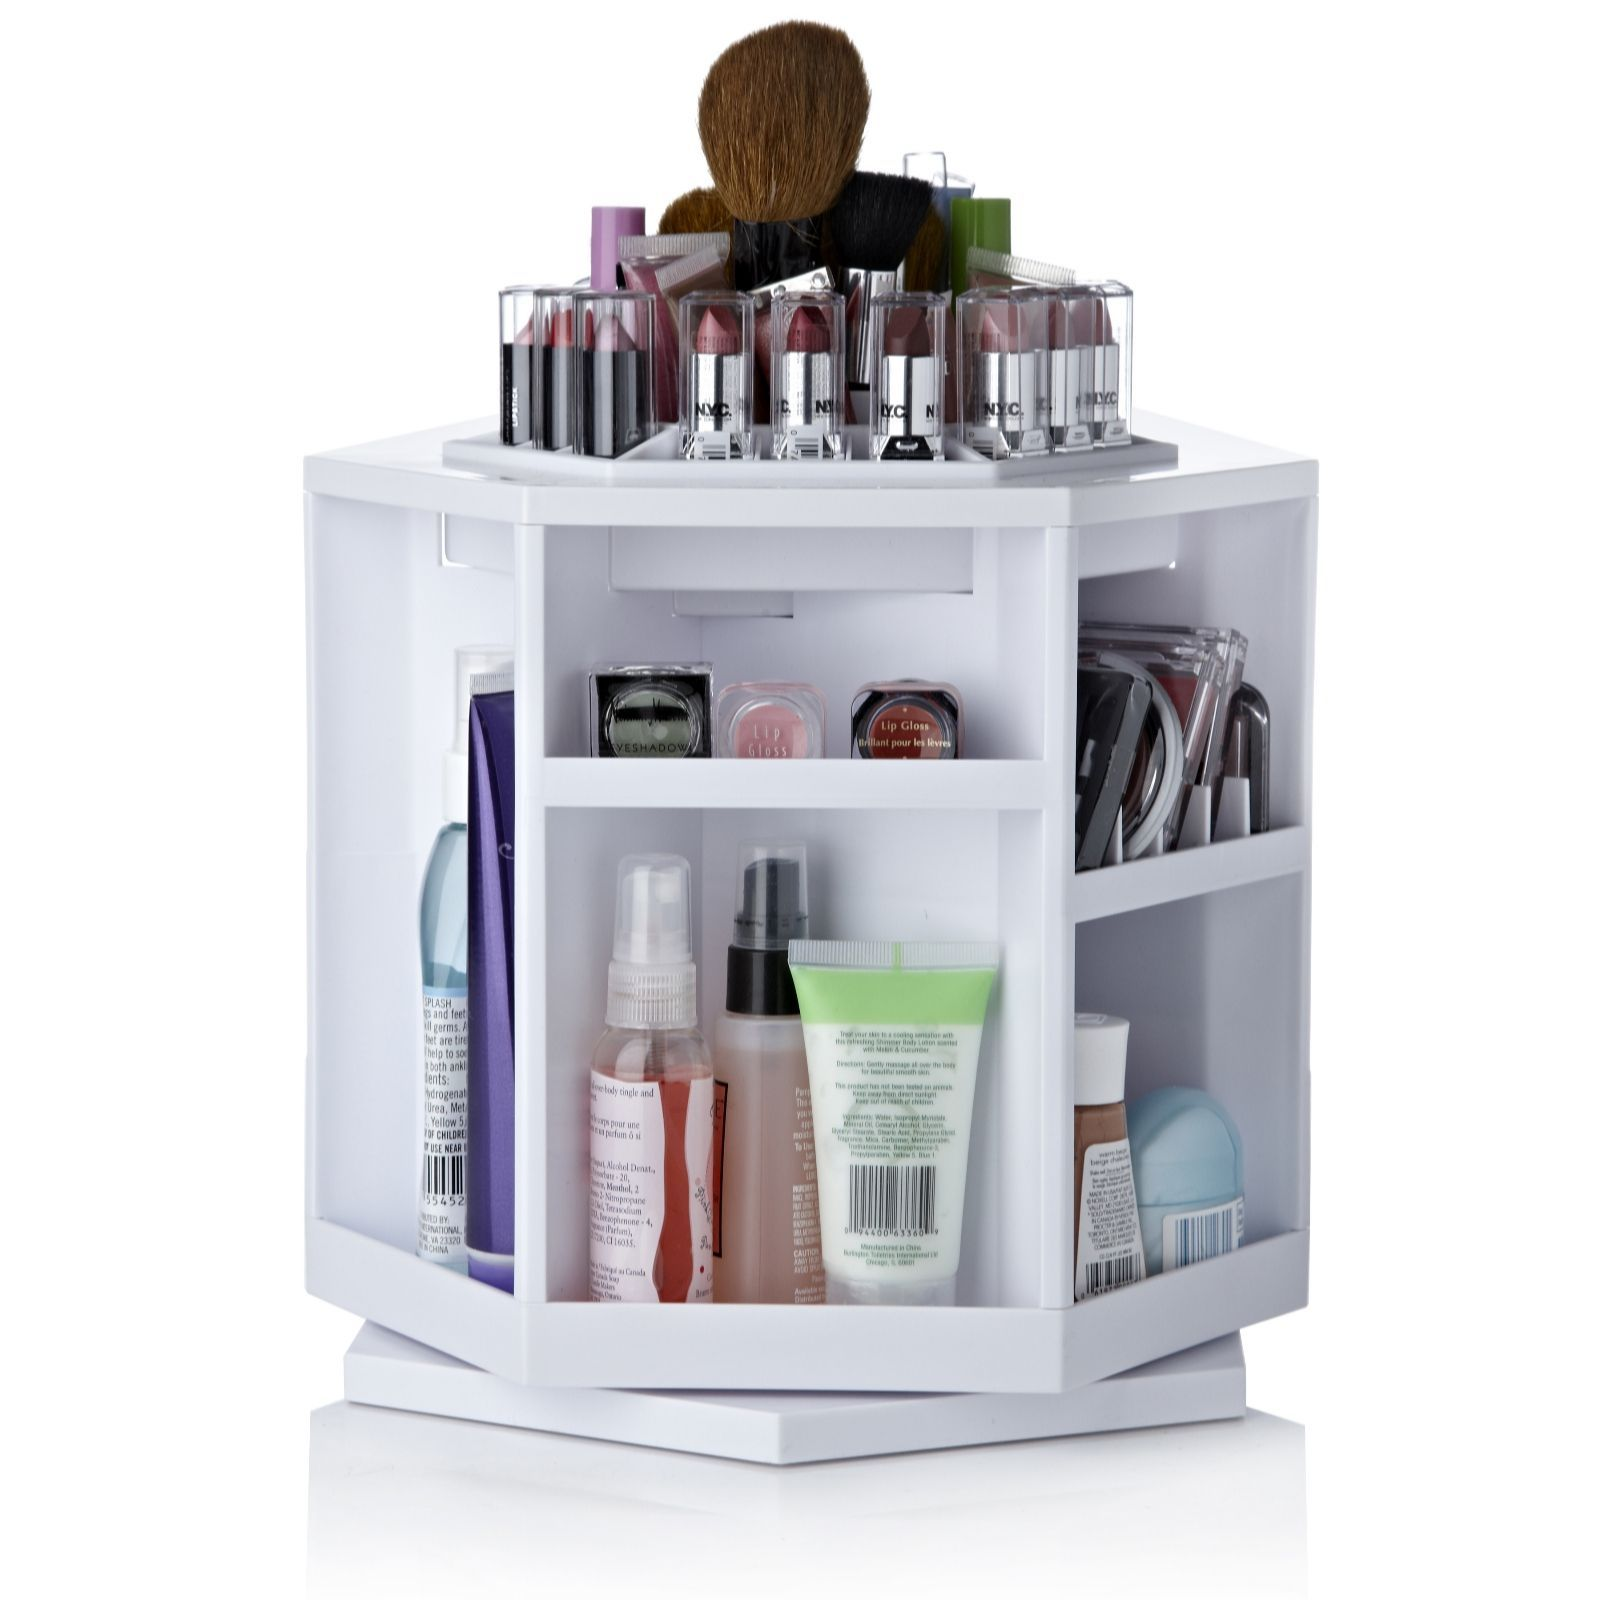 Qvc Makeup Organizer Entrancing Summer Surprise Offer759257 Tabletop Spinning Cosmetic Organiser Design Decoration